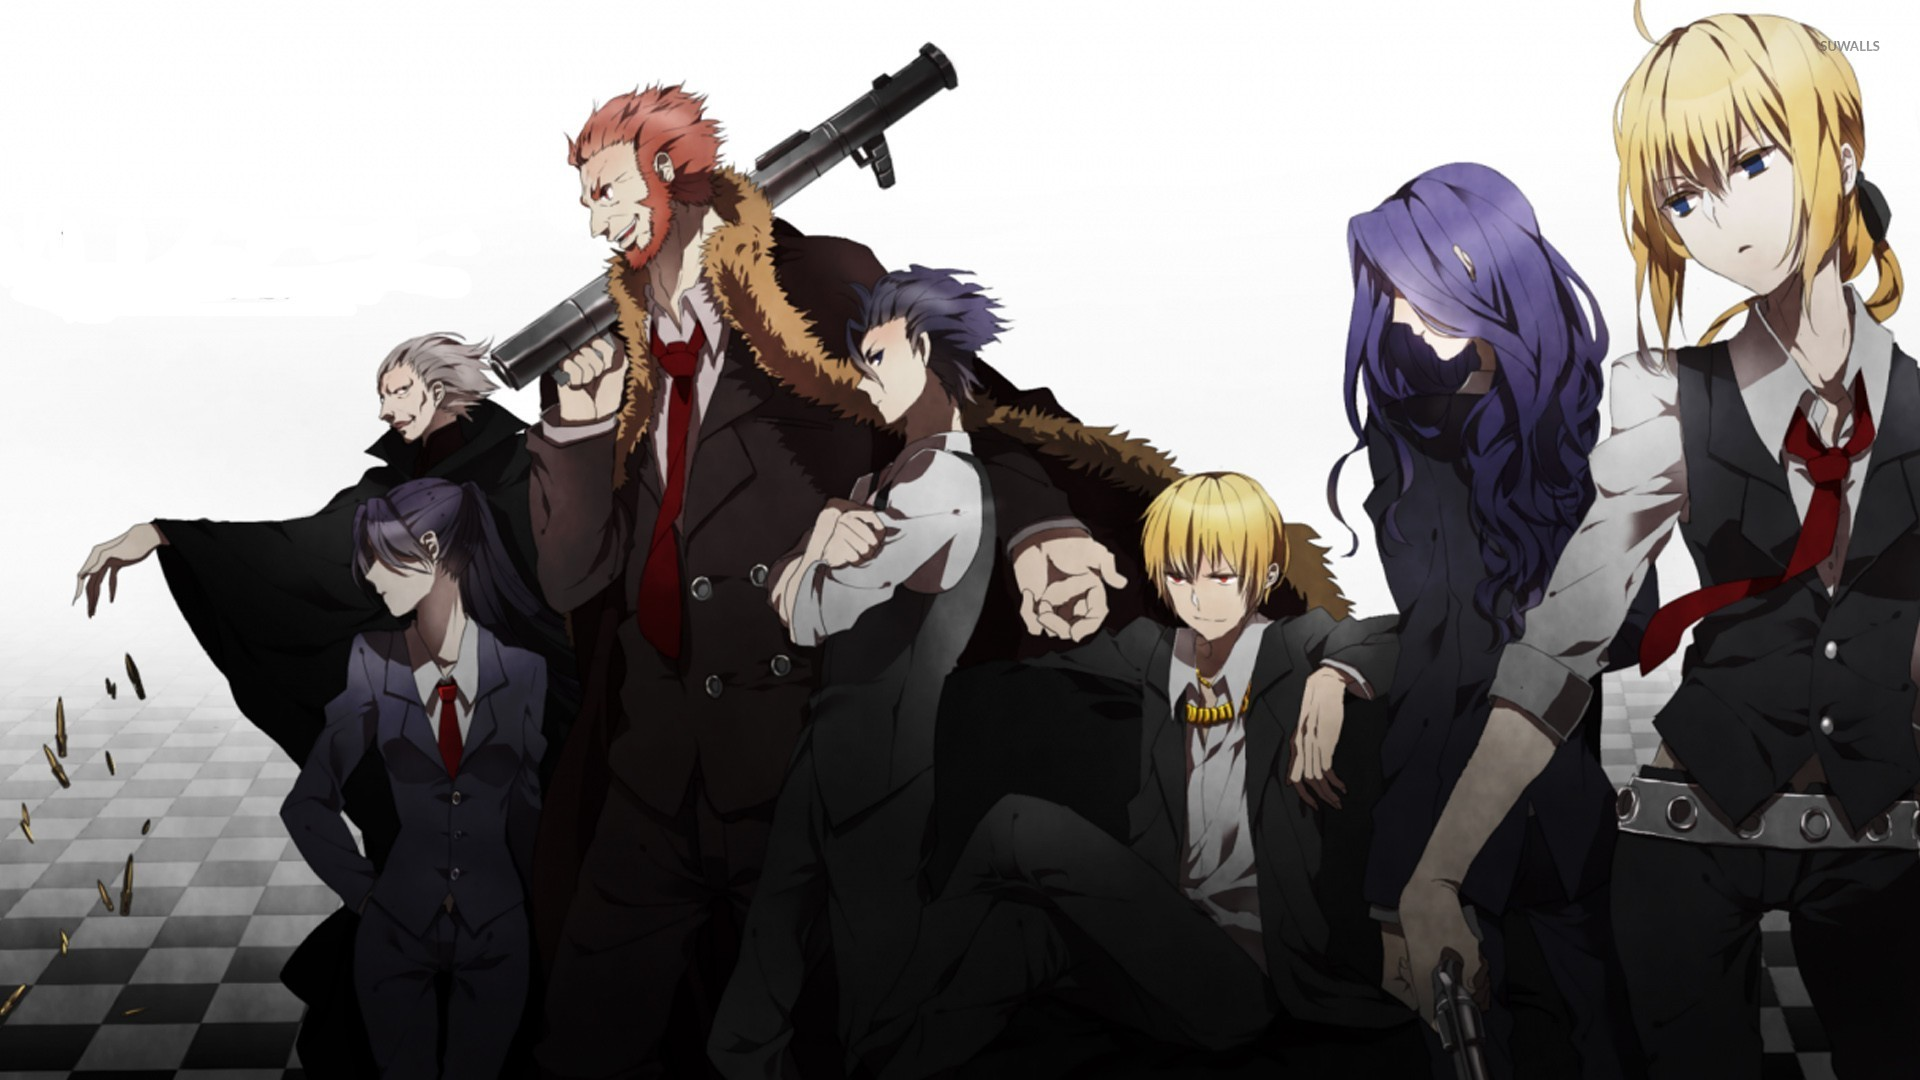 Fate Stay Night 5 Wallpaper Anime Wallpapers 41770